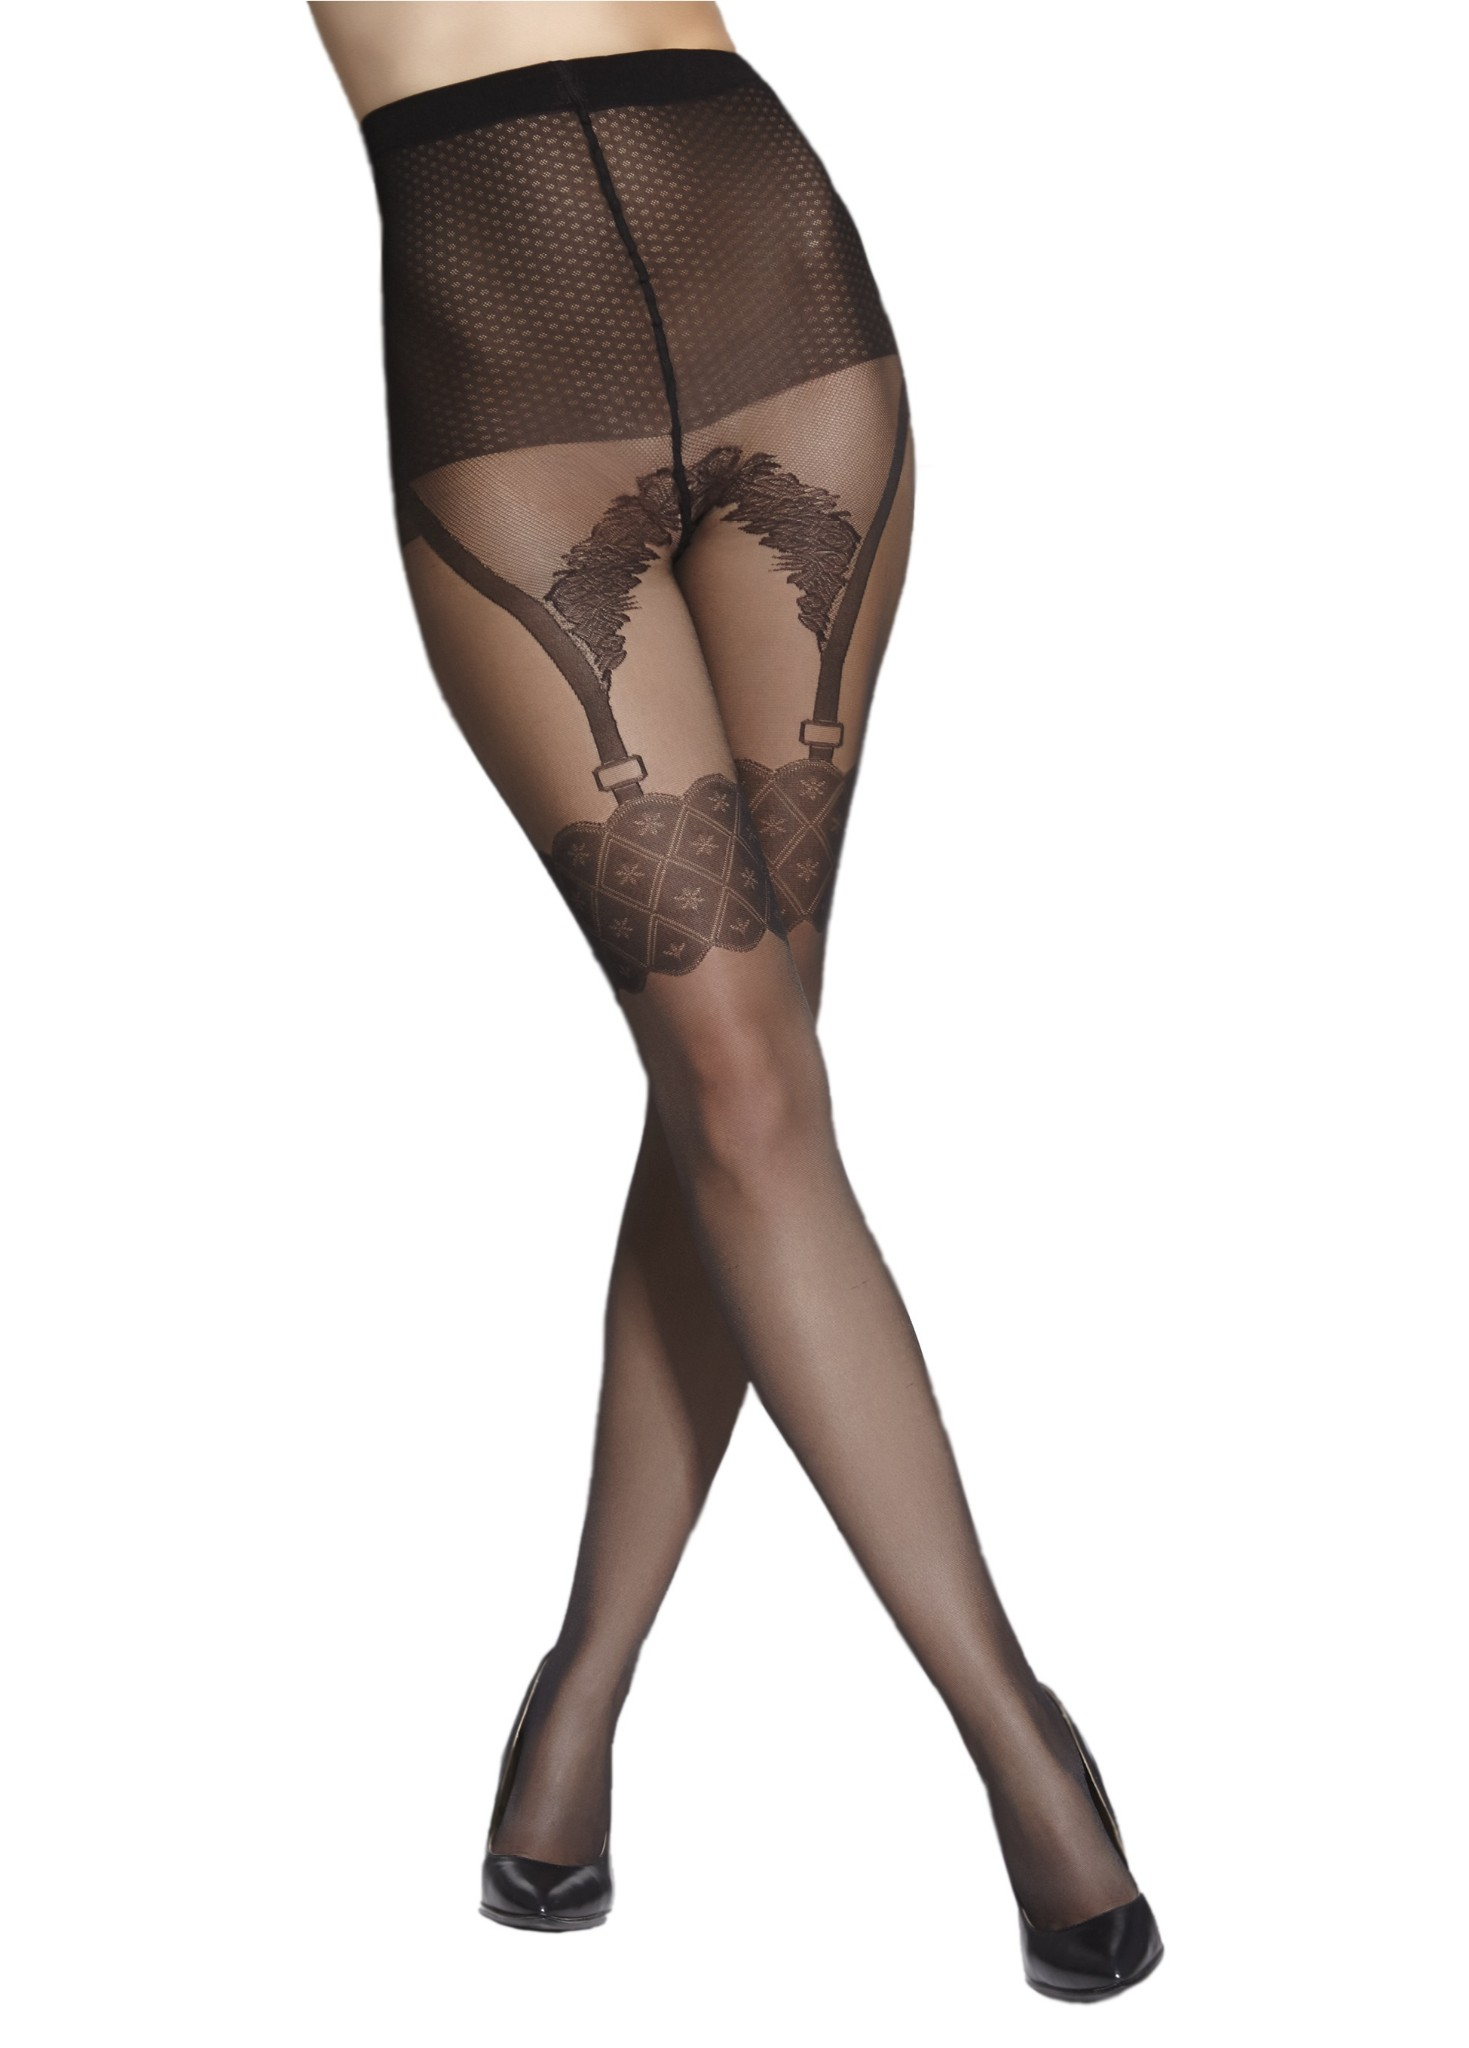 Charlotte Fancy Patterned Tights 20 Denier Adrian